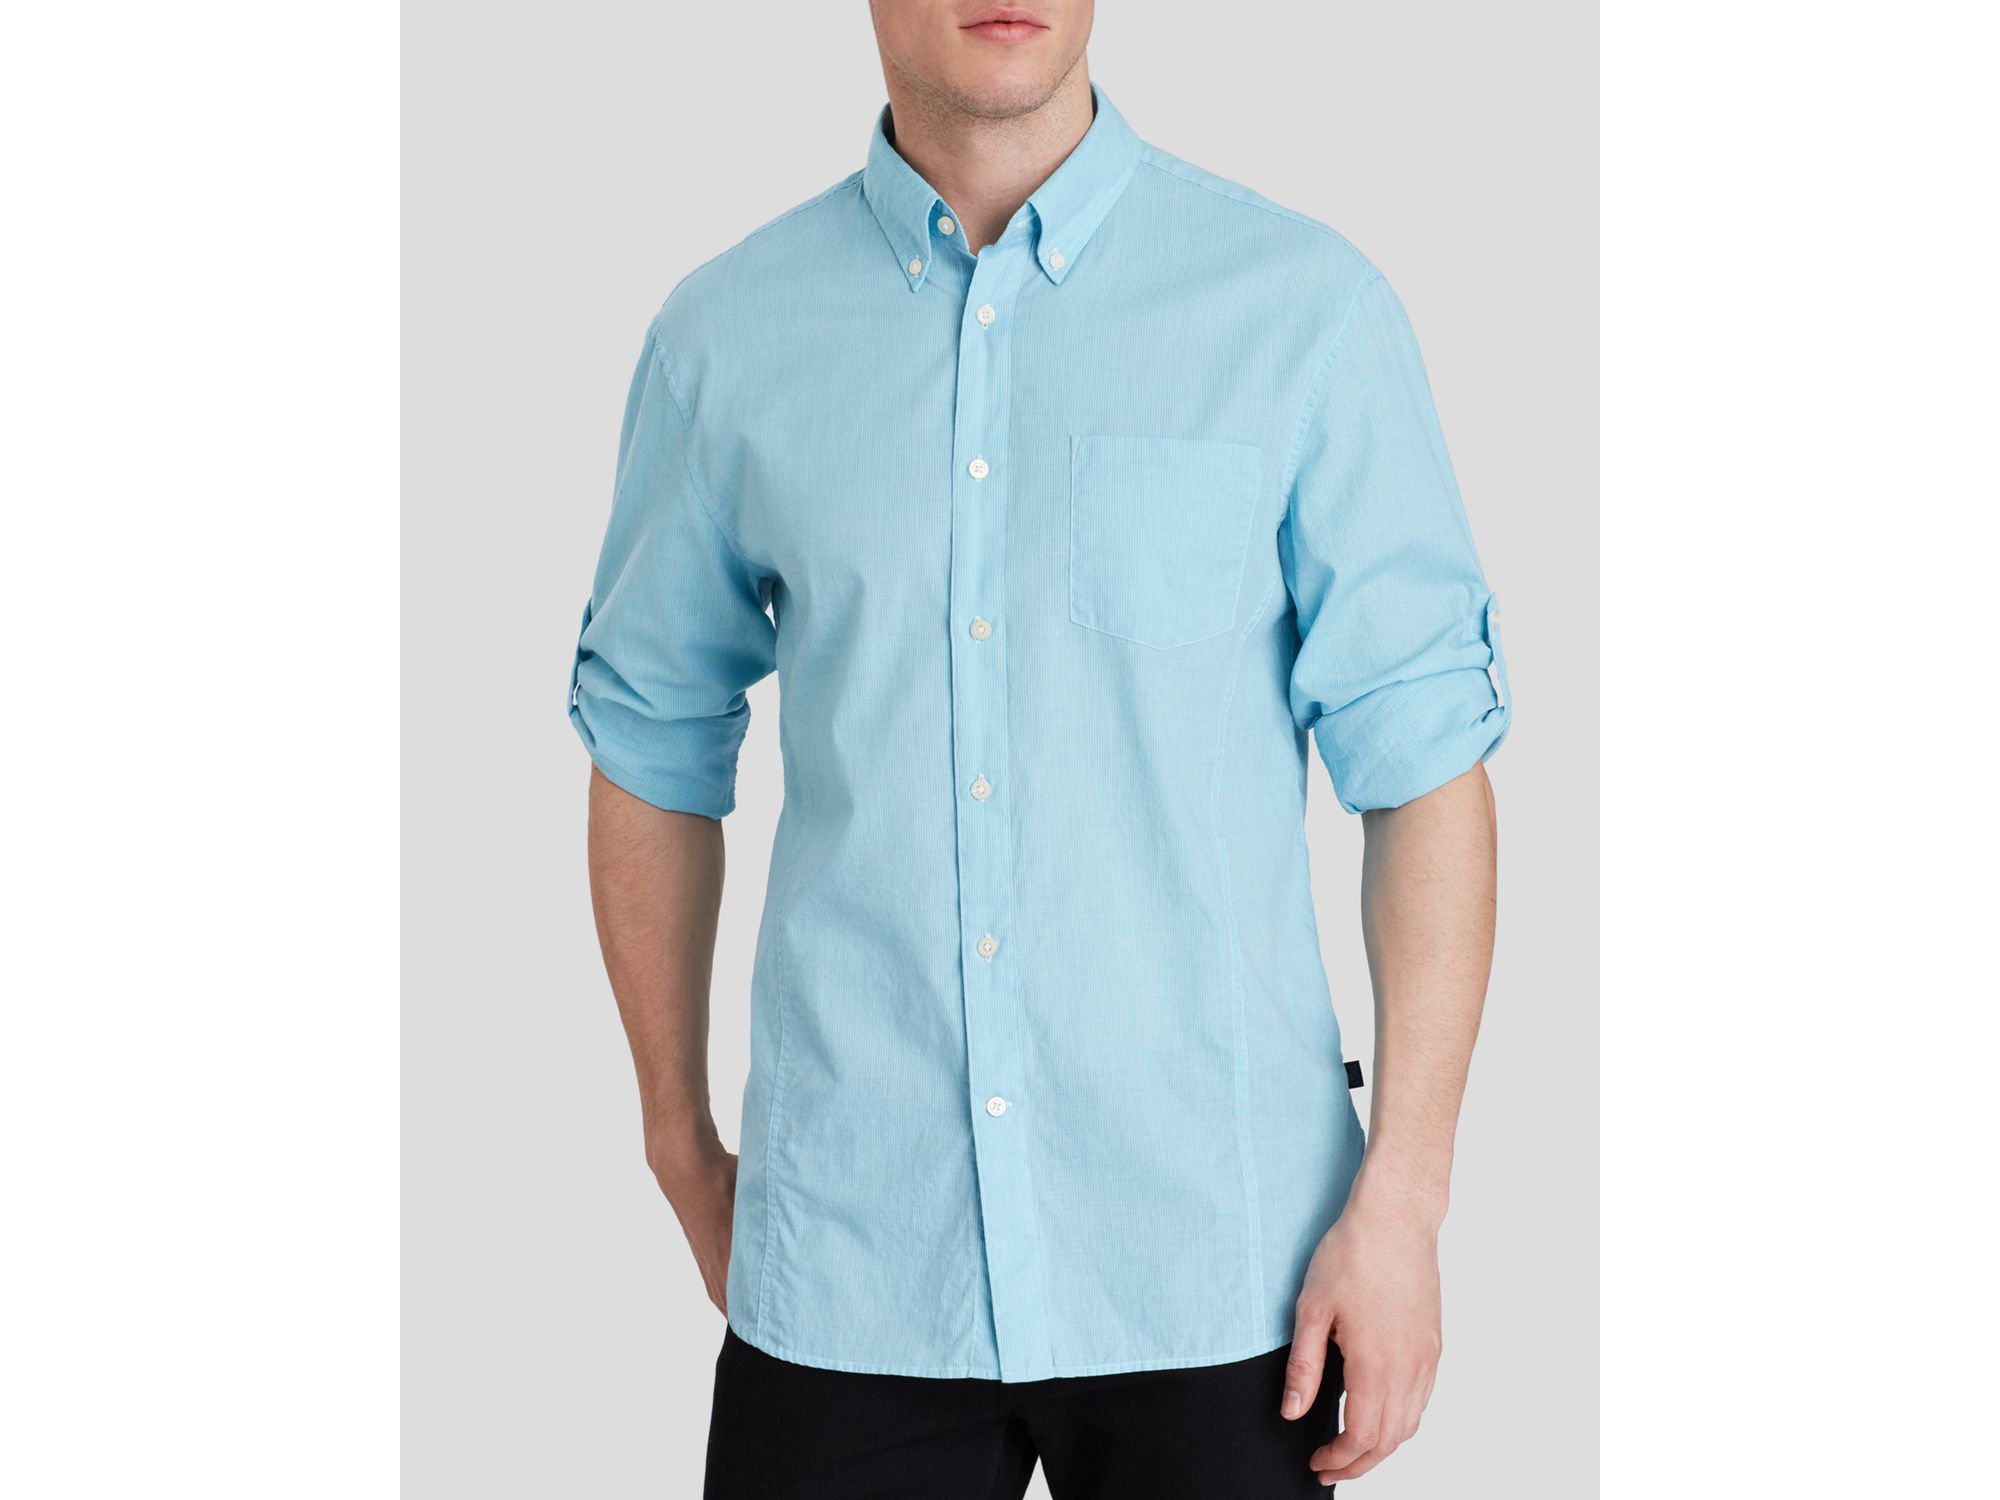 John varvatos Star Usa Roll Up Sleeve Button Down Shirt - Regular ...